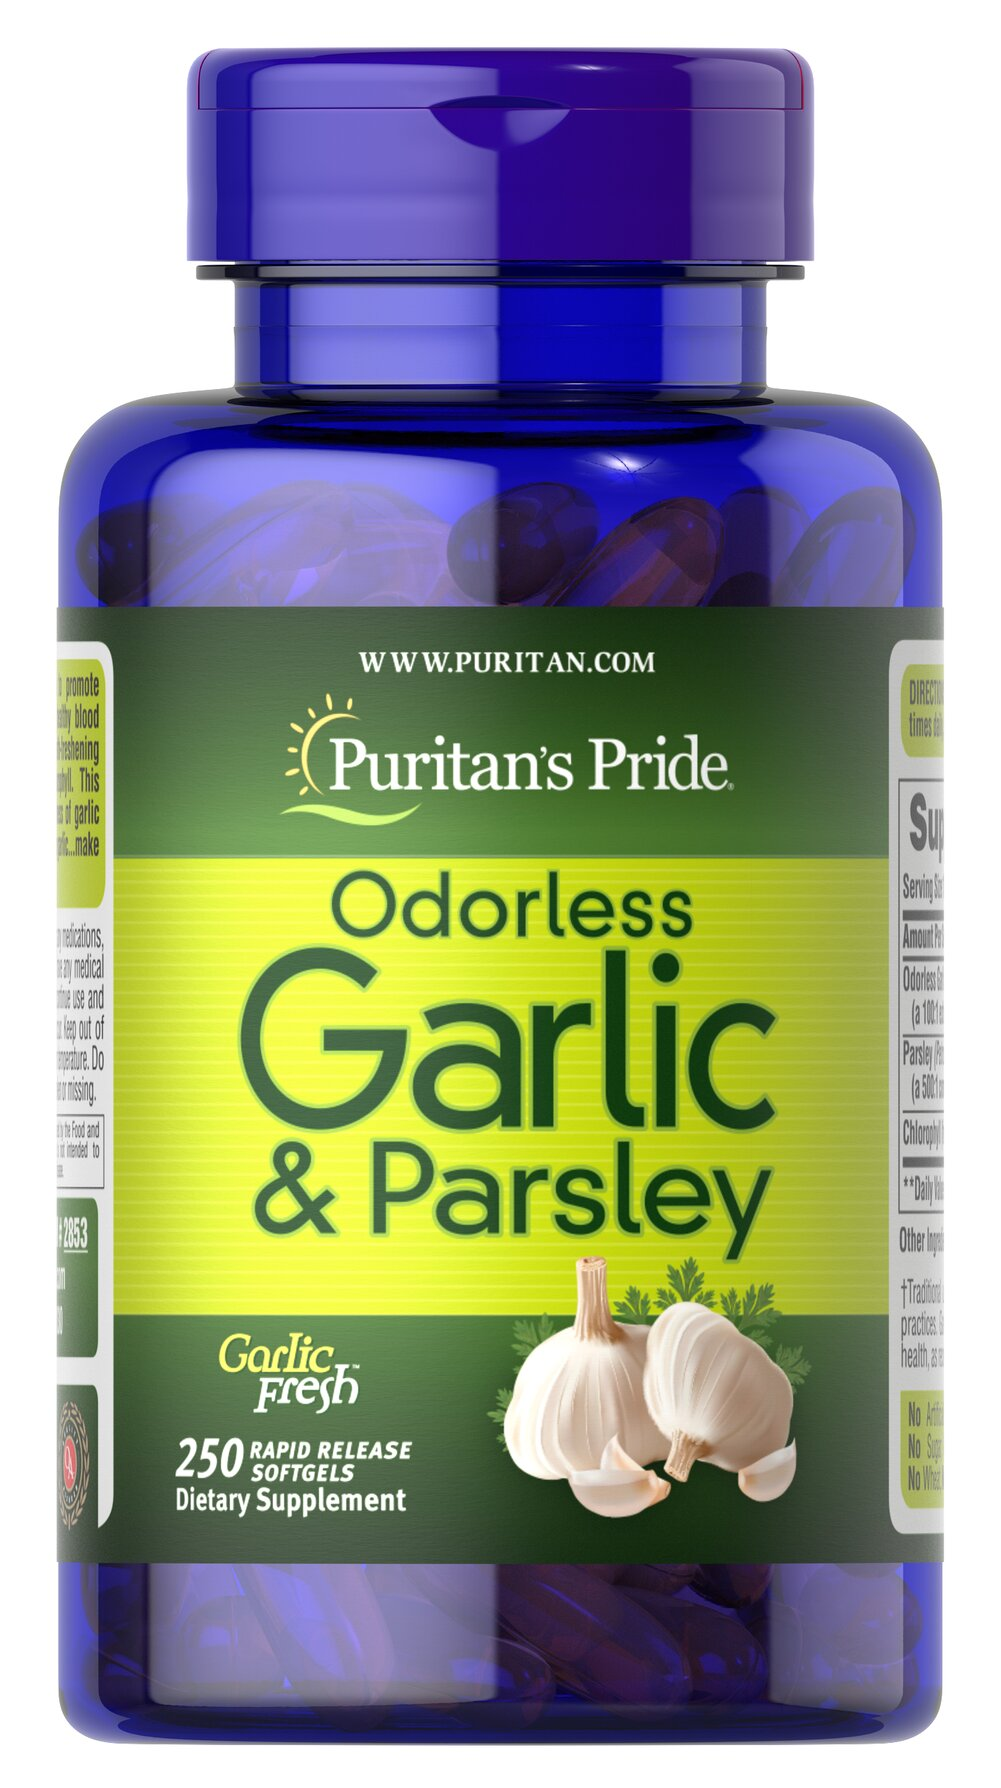 Odorless Garlic & Parsley 500 mg / 100 mg